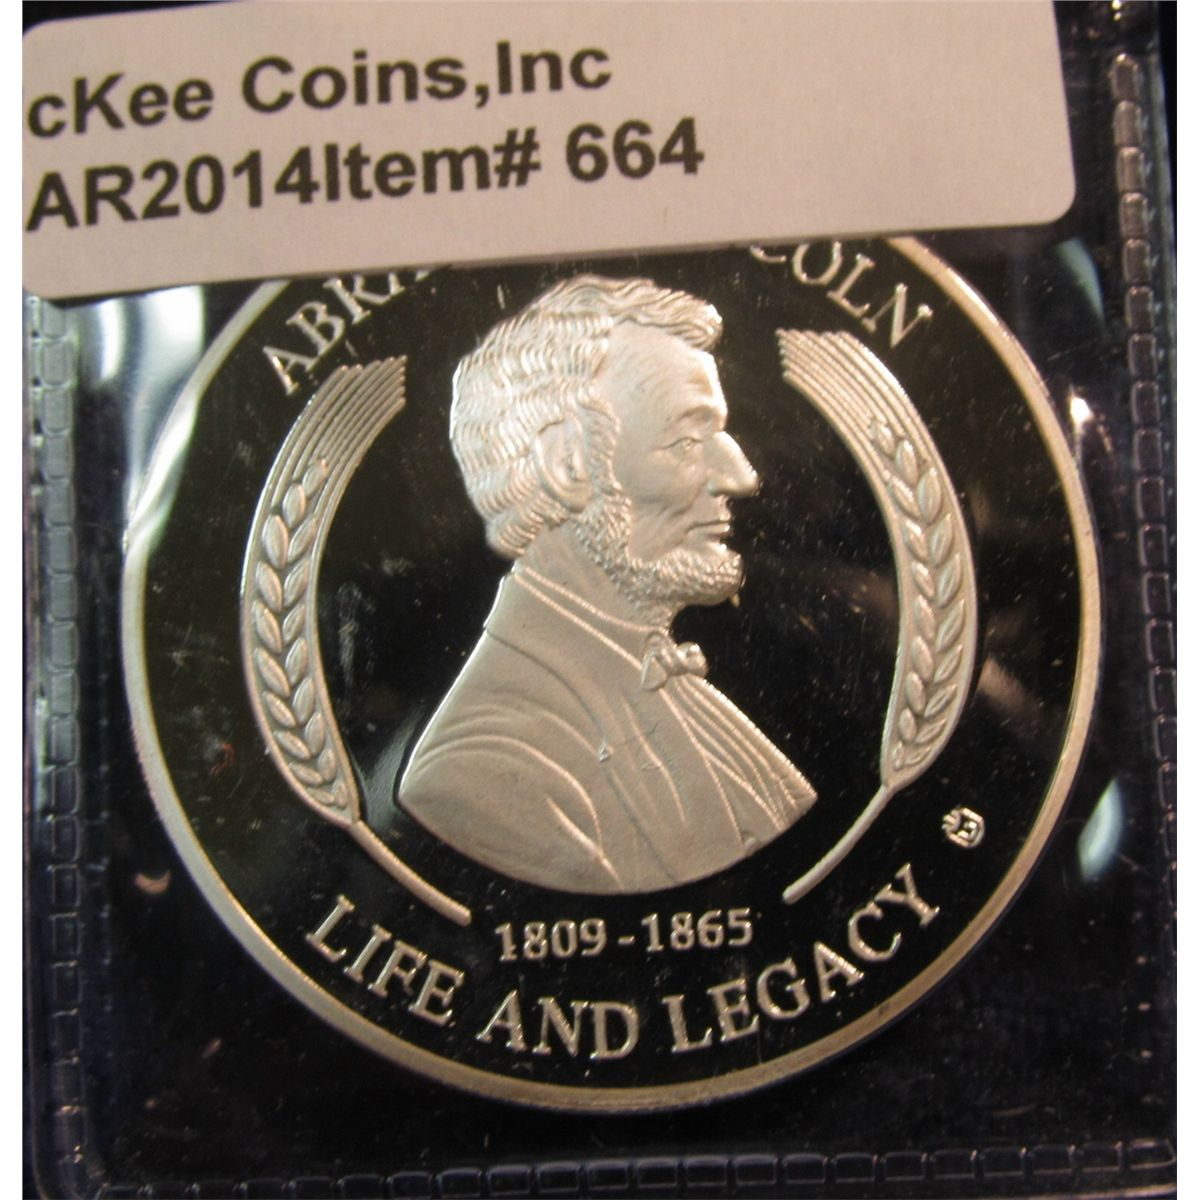 abraham lincoln life and legacy coin value